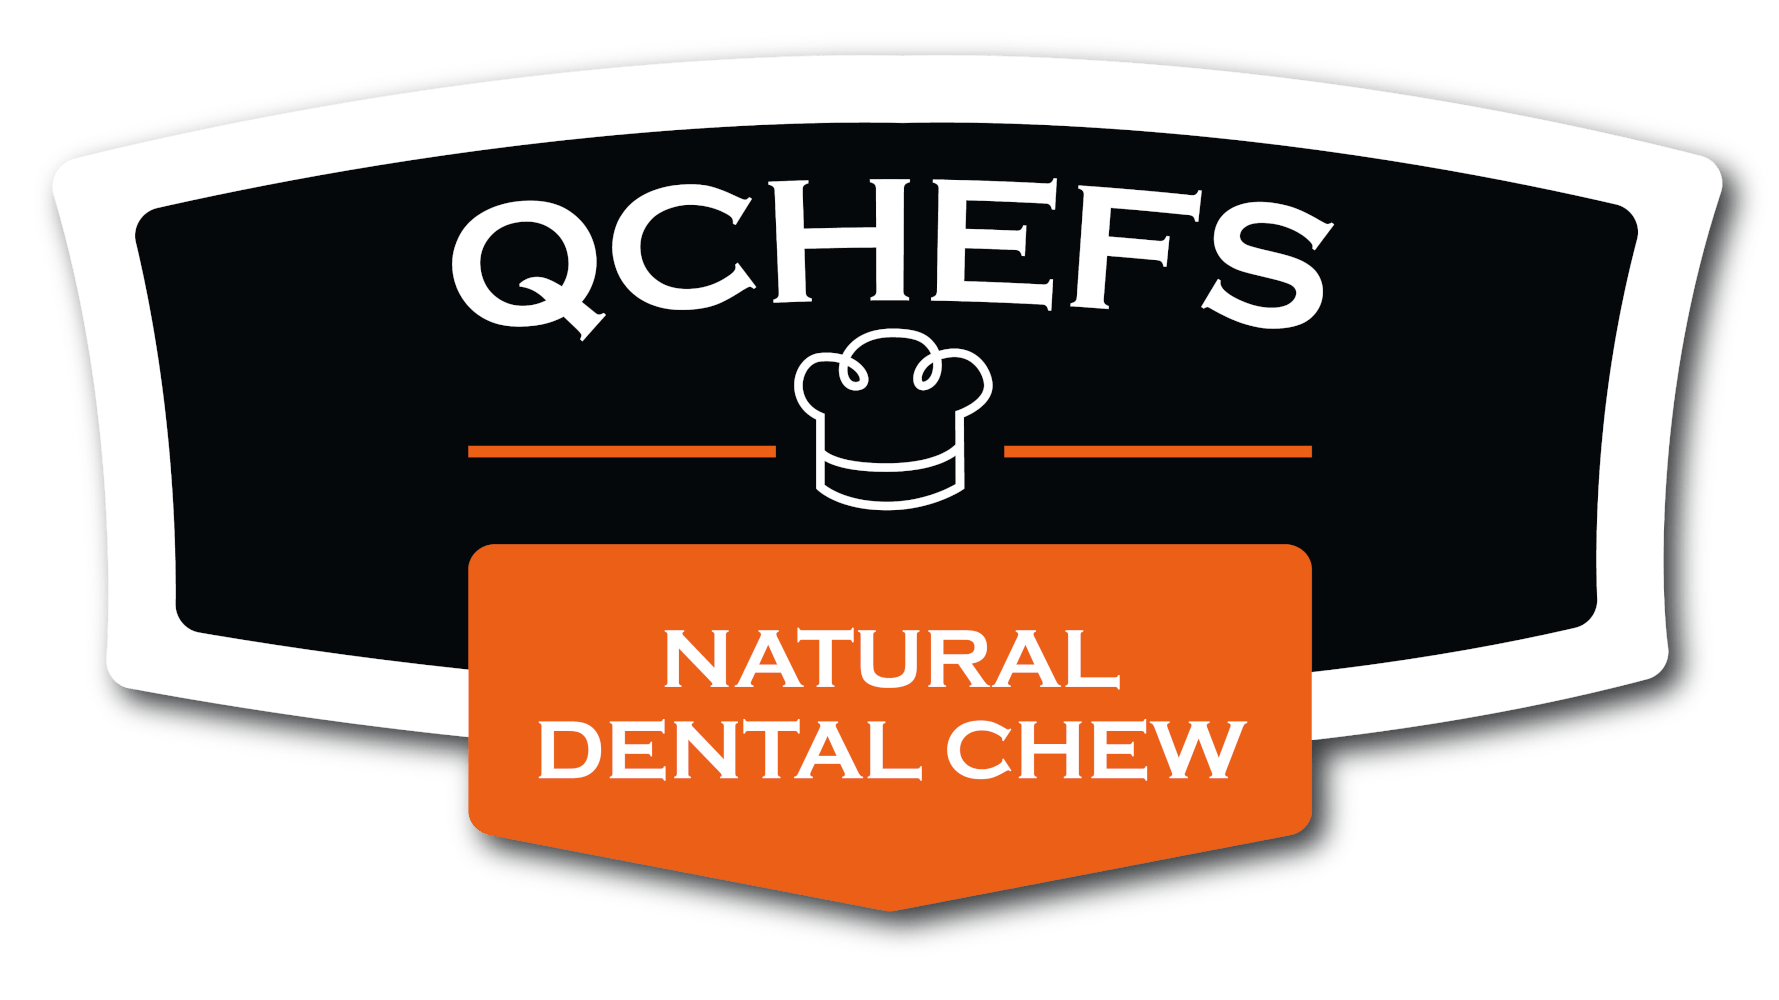 QCHEFS natural dental chew